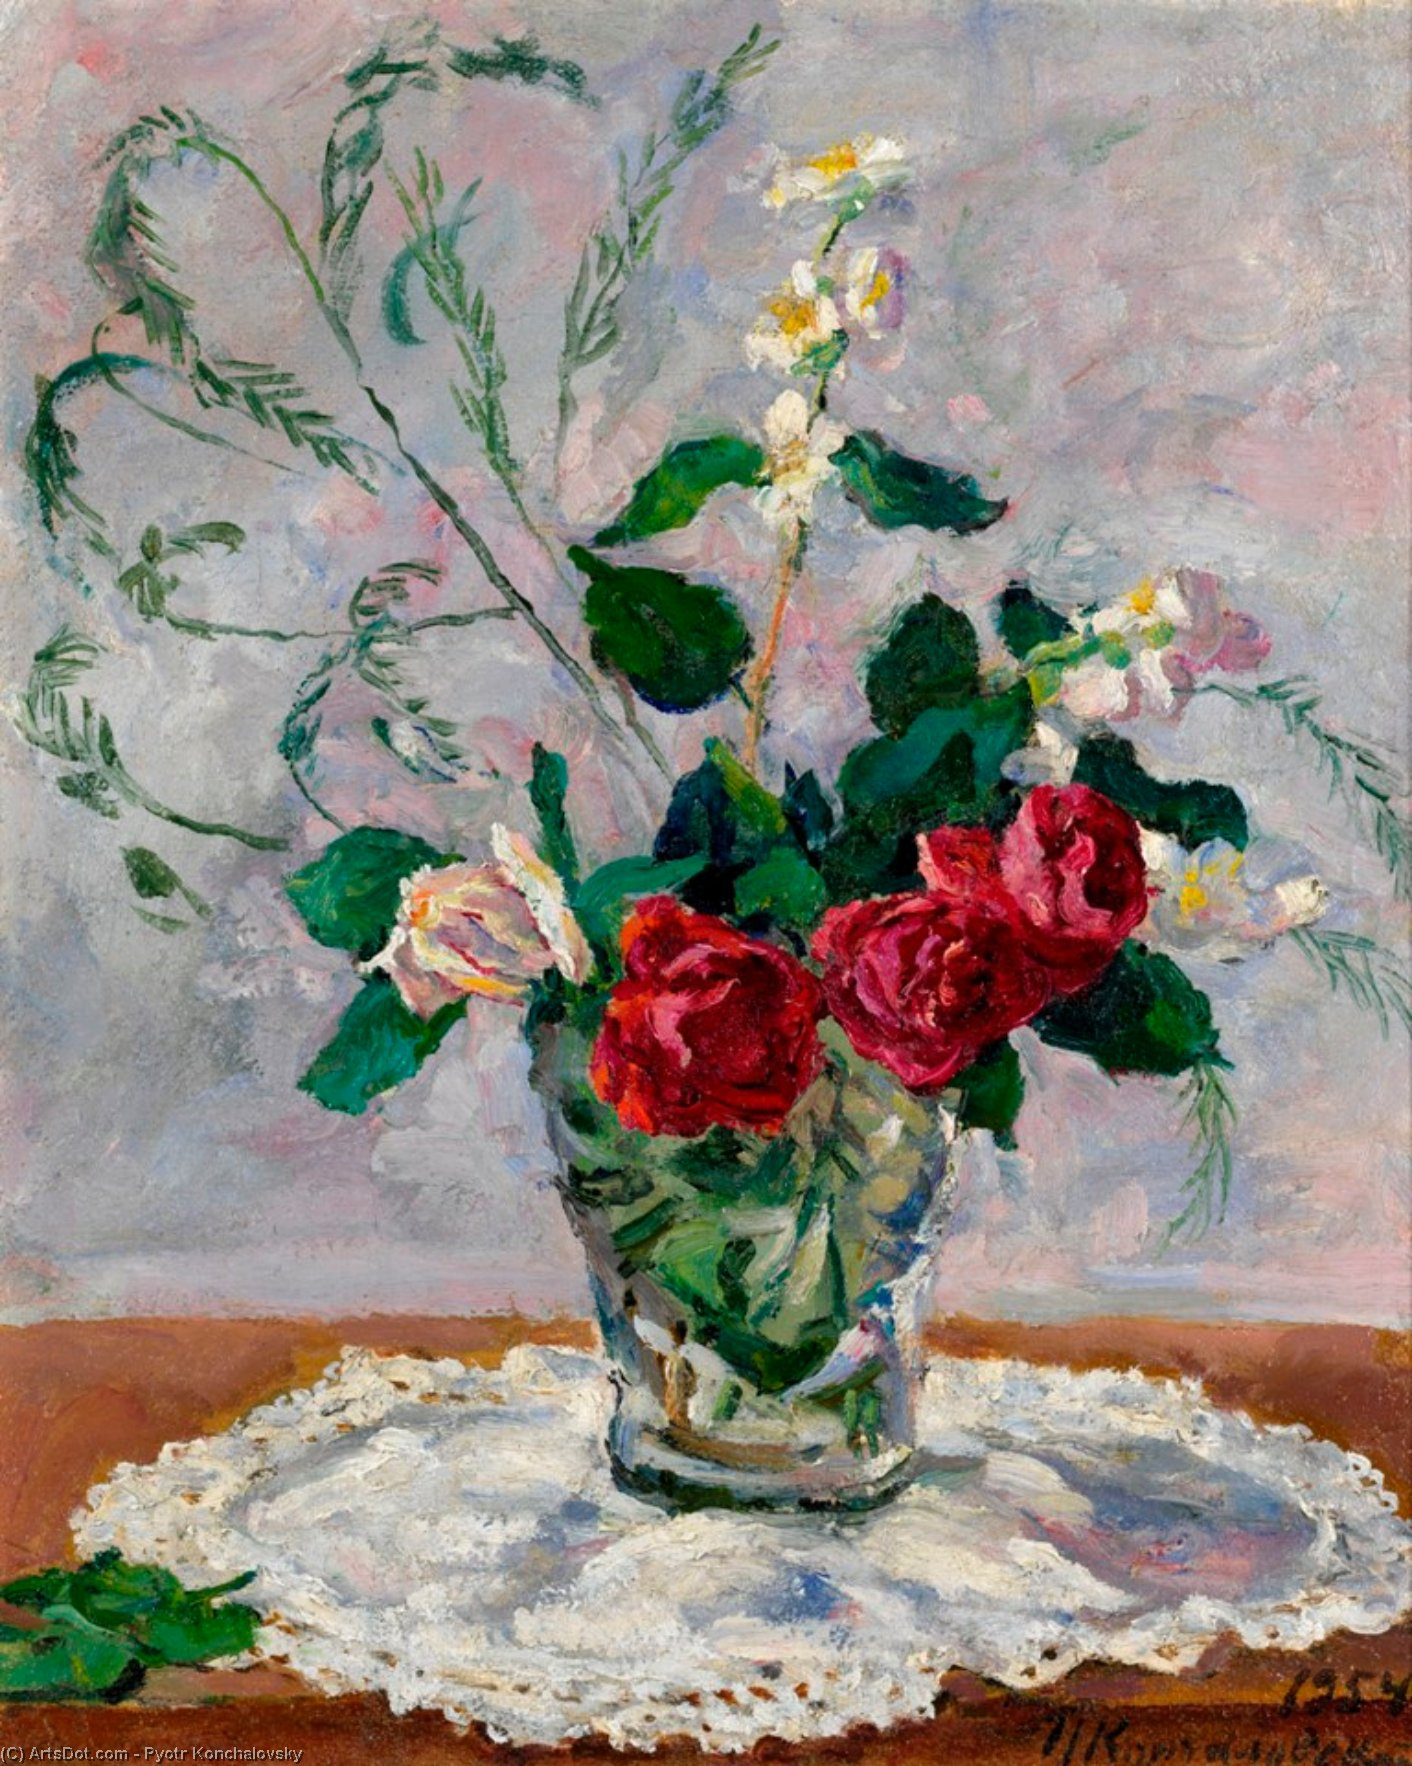 Still life with roses, jasmine and asparagus, 1954 by Pyotr Konchalovsky (1876-1956, Russia)